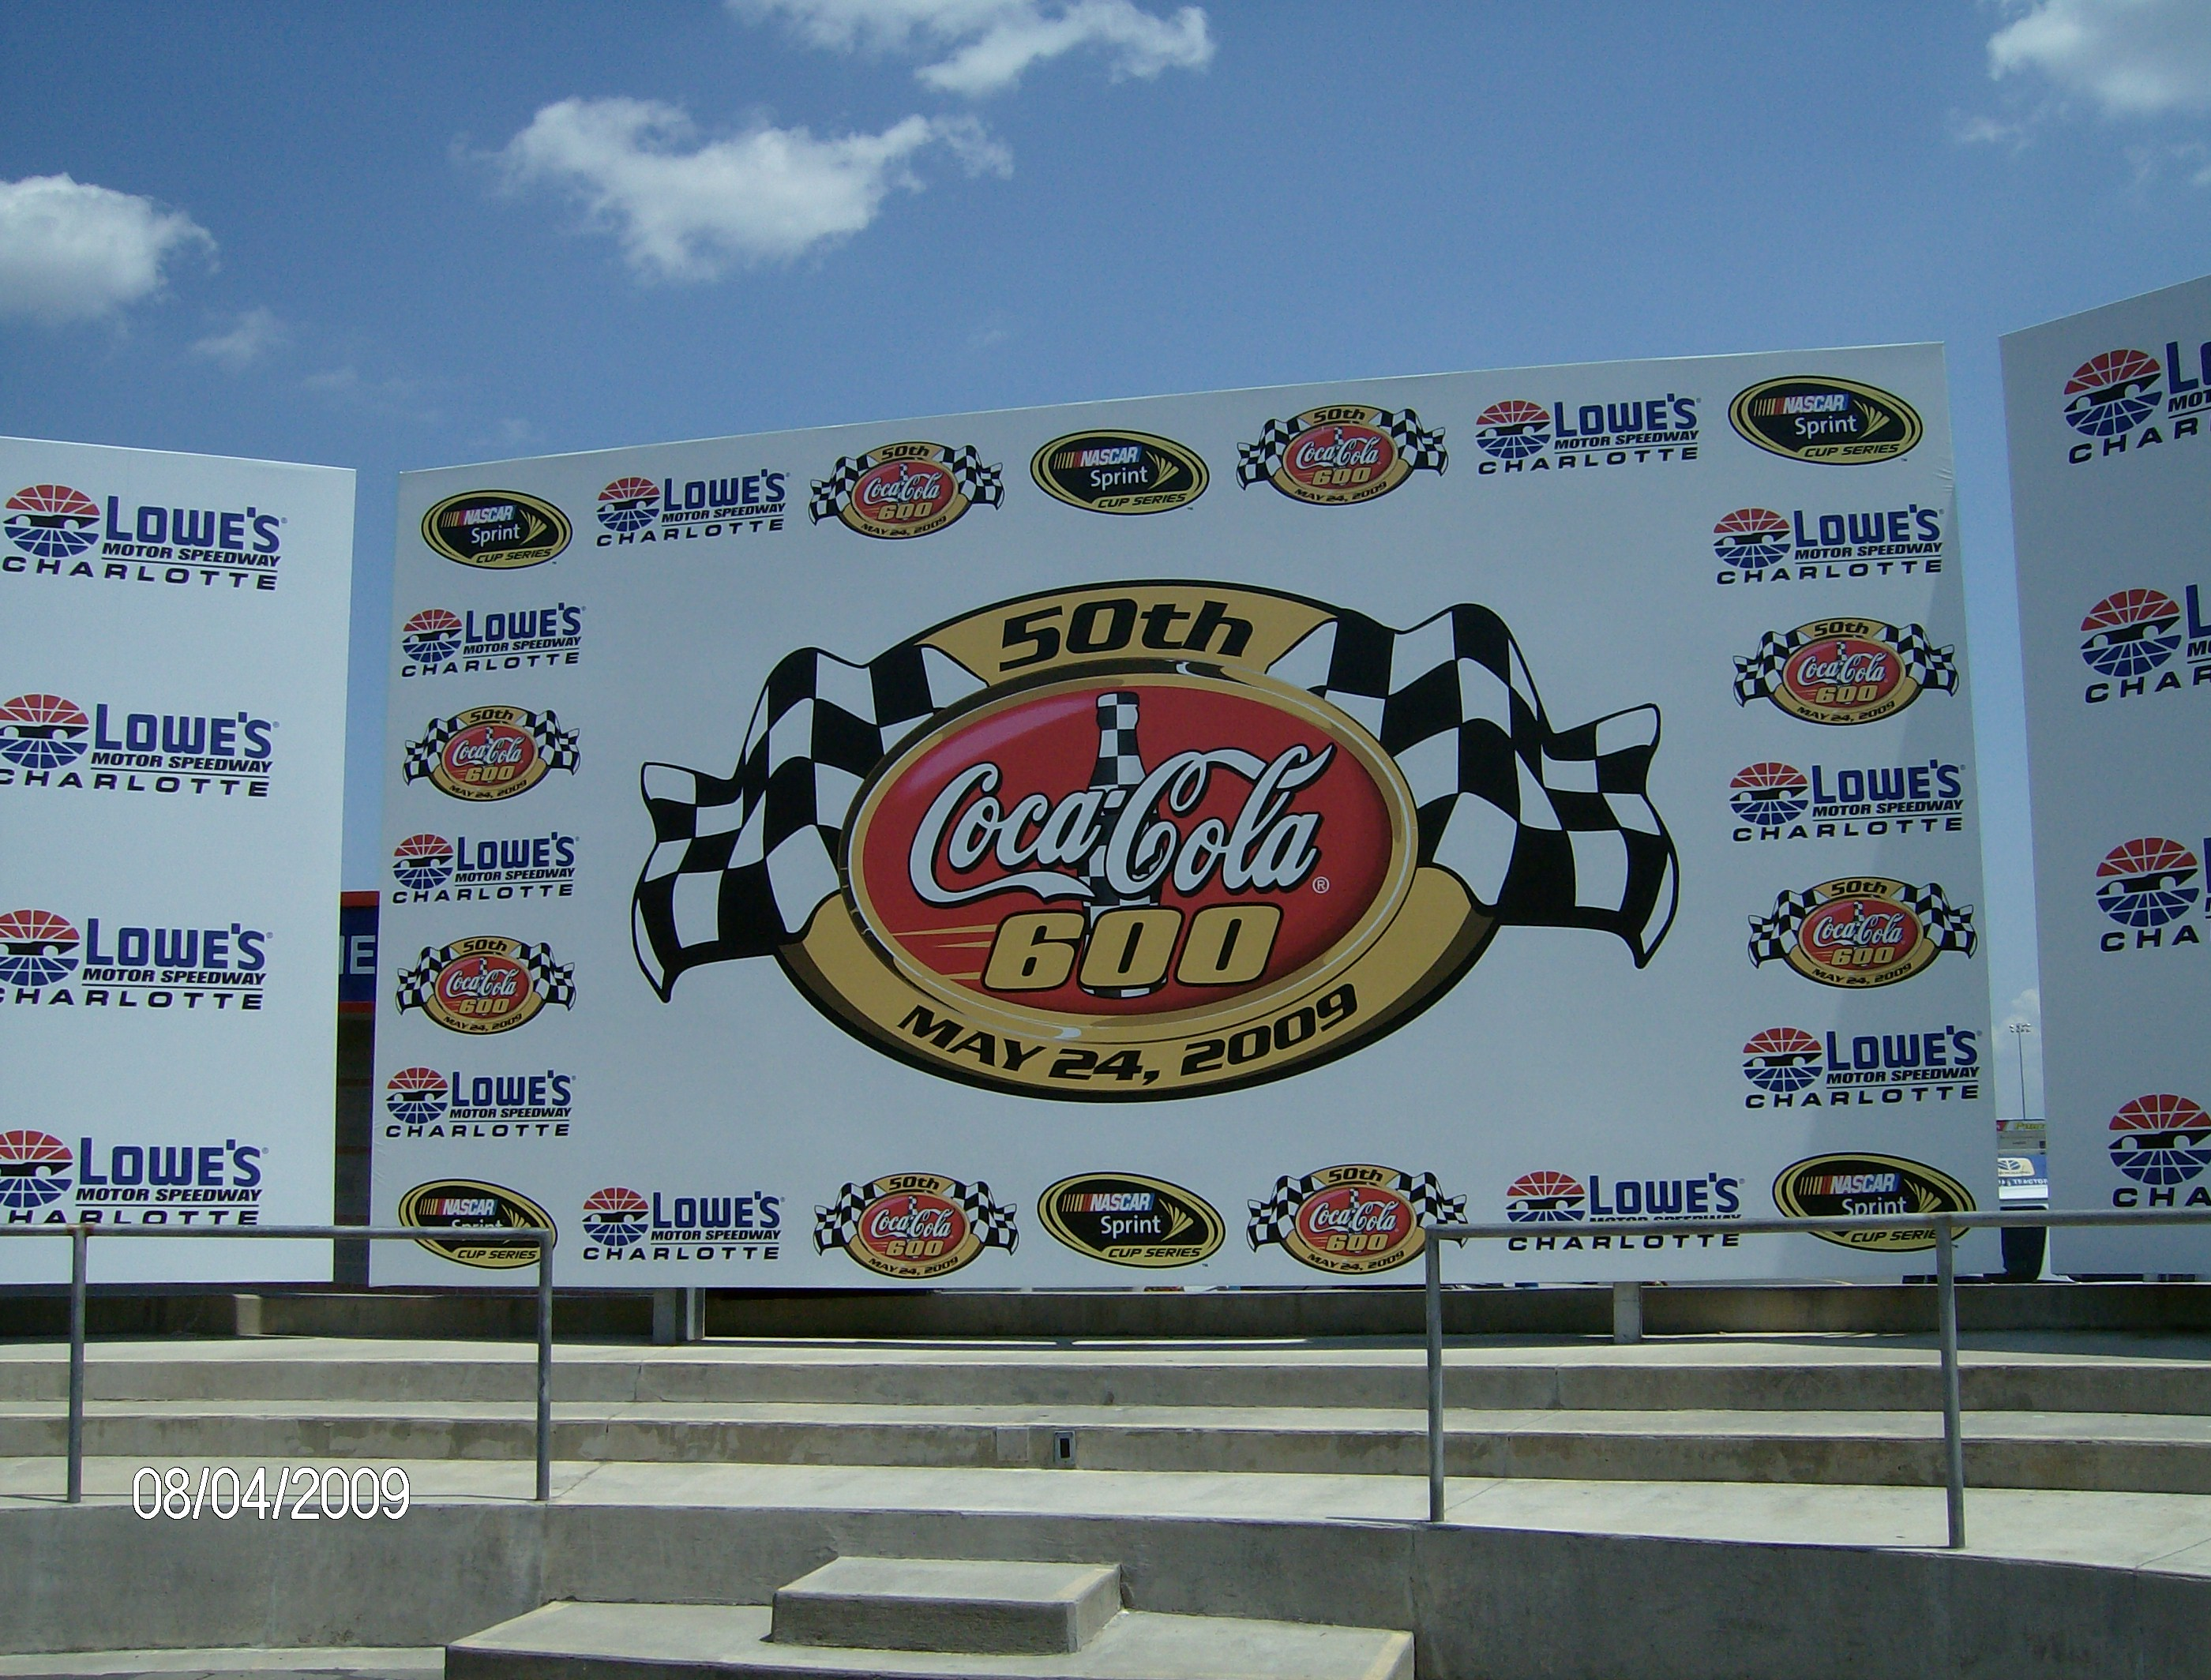 File:Charlotte Motor Speedway victory lane 2009.jpg - Wikimedia Commons